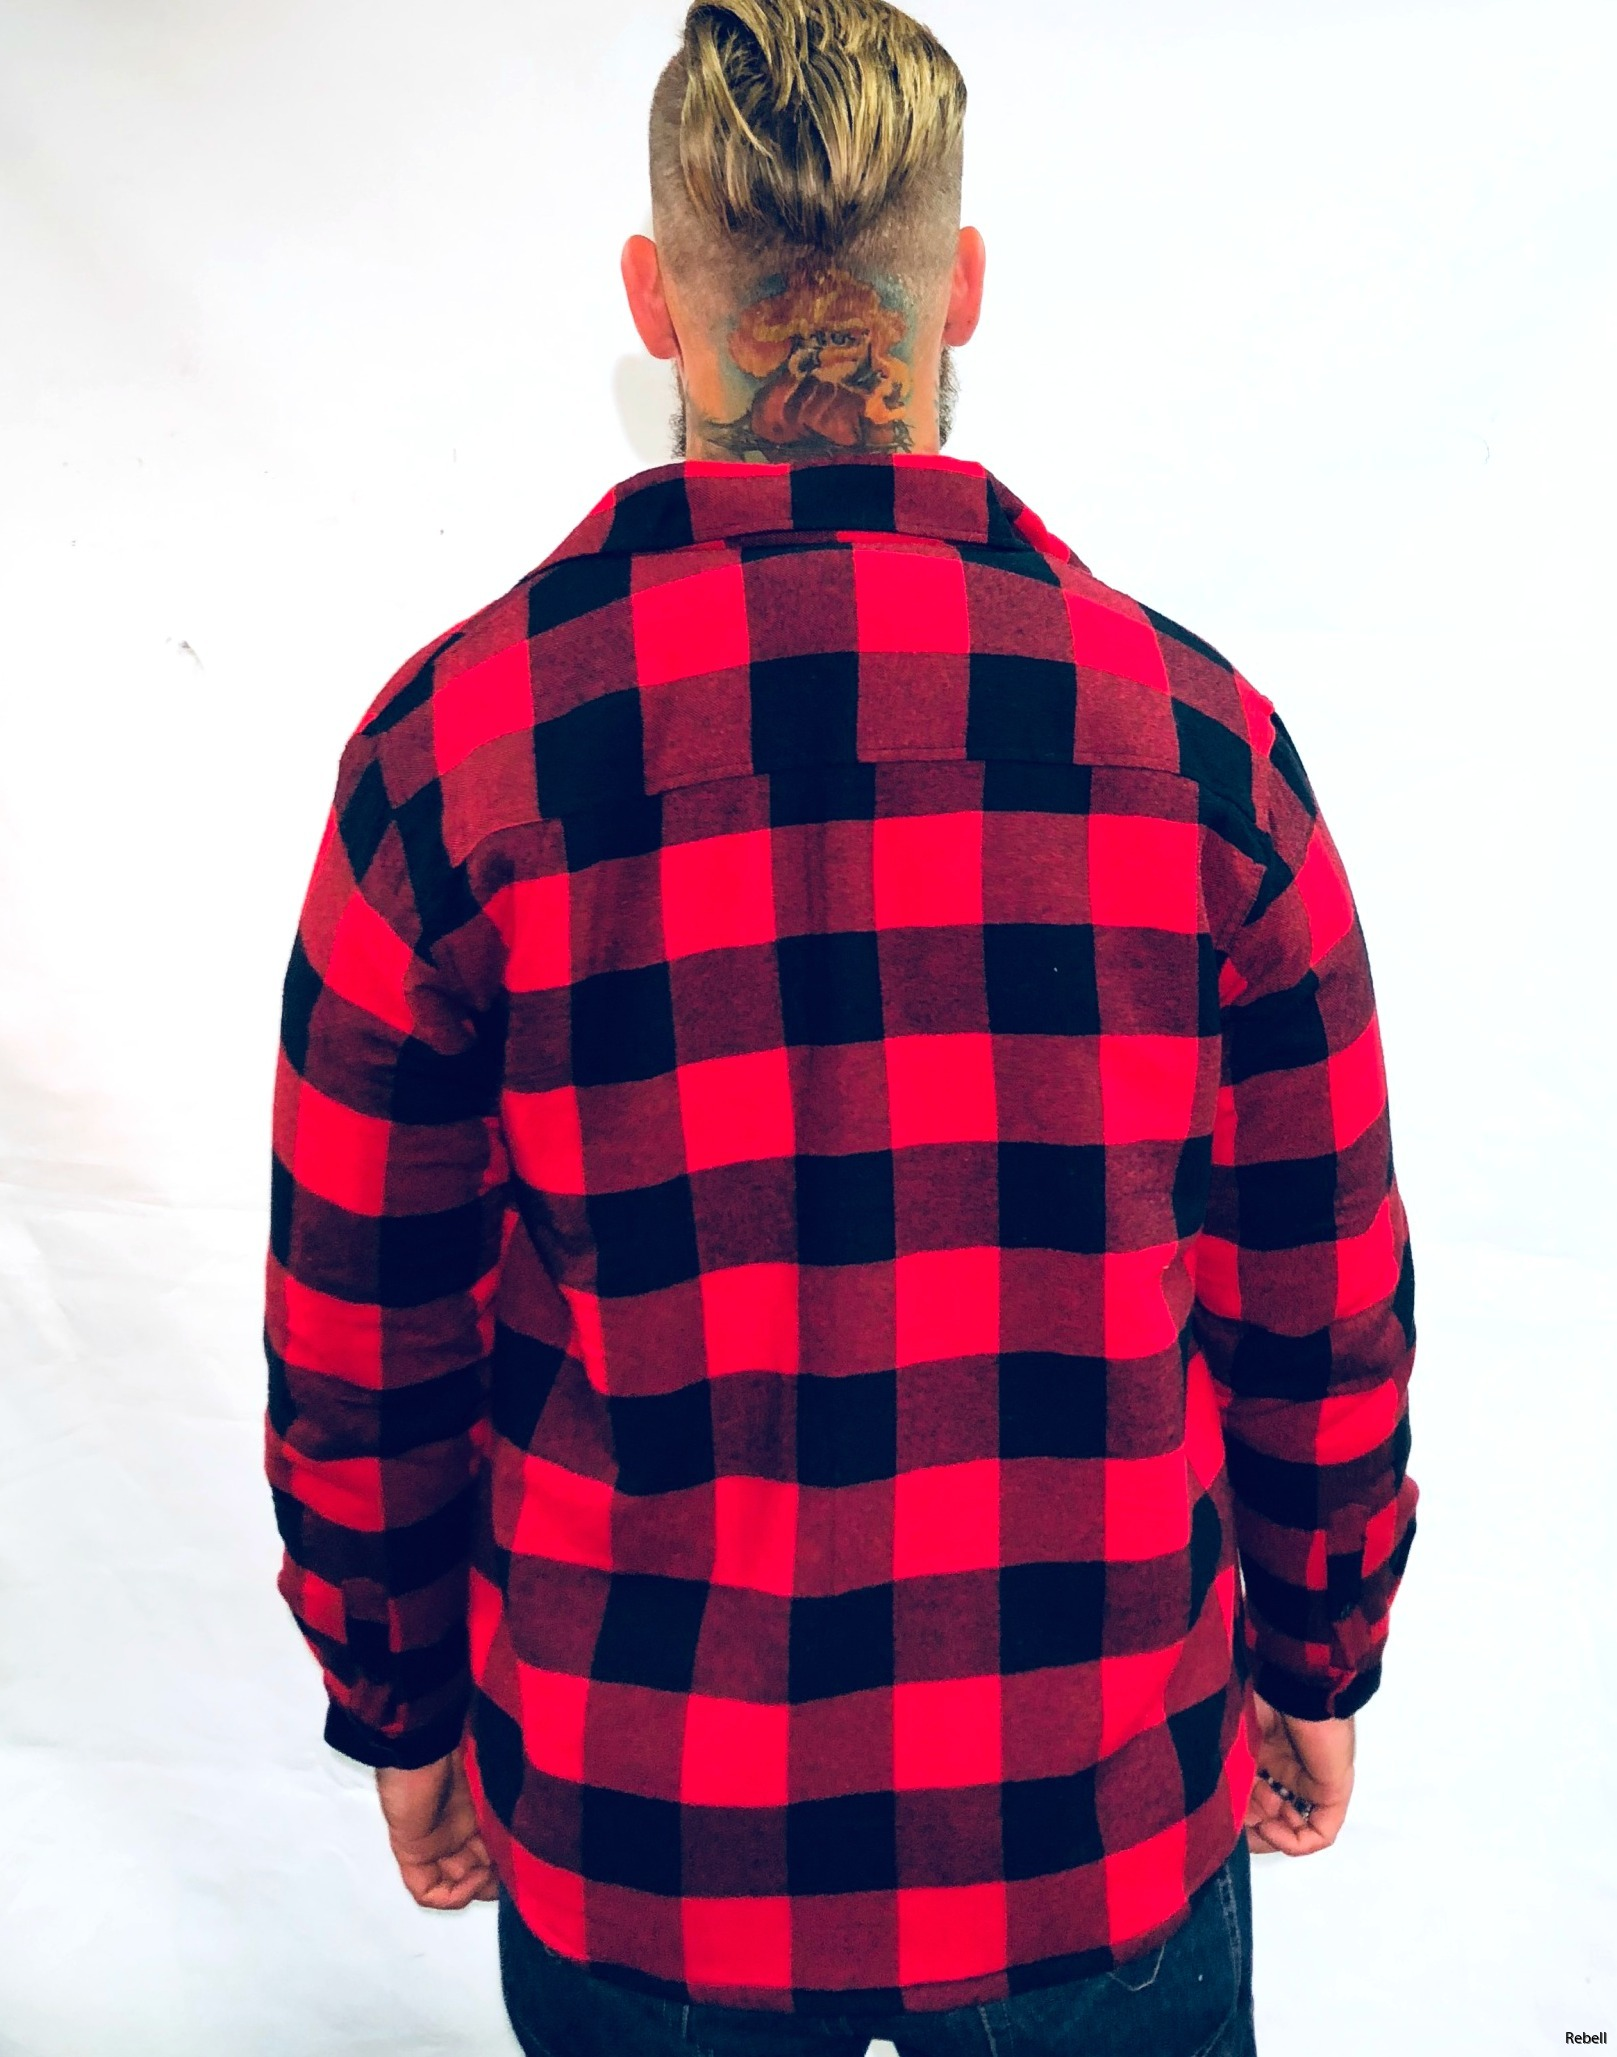 Dickies Jacka fodrad Flanell jacka rebell www.rebellclothes.se